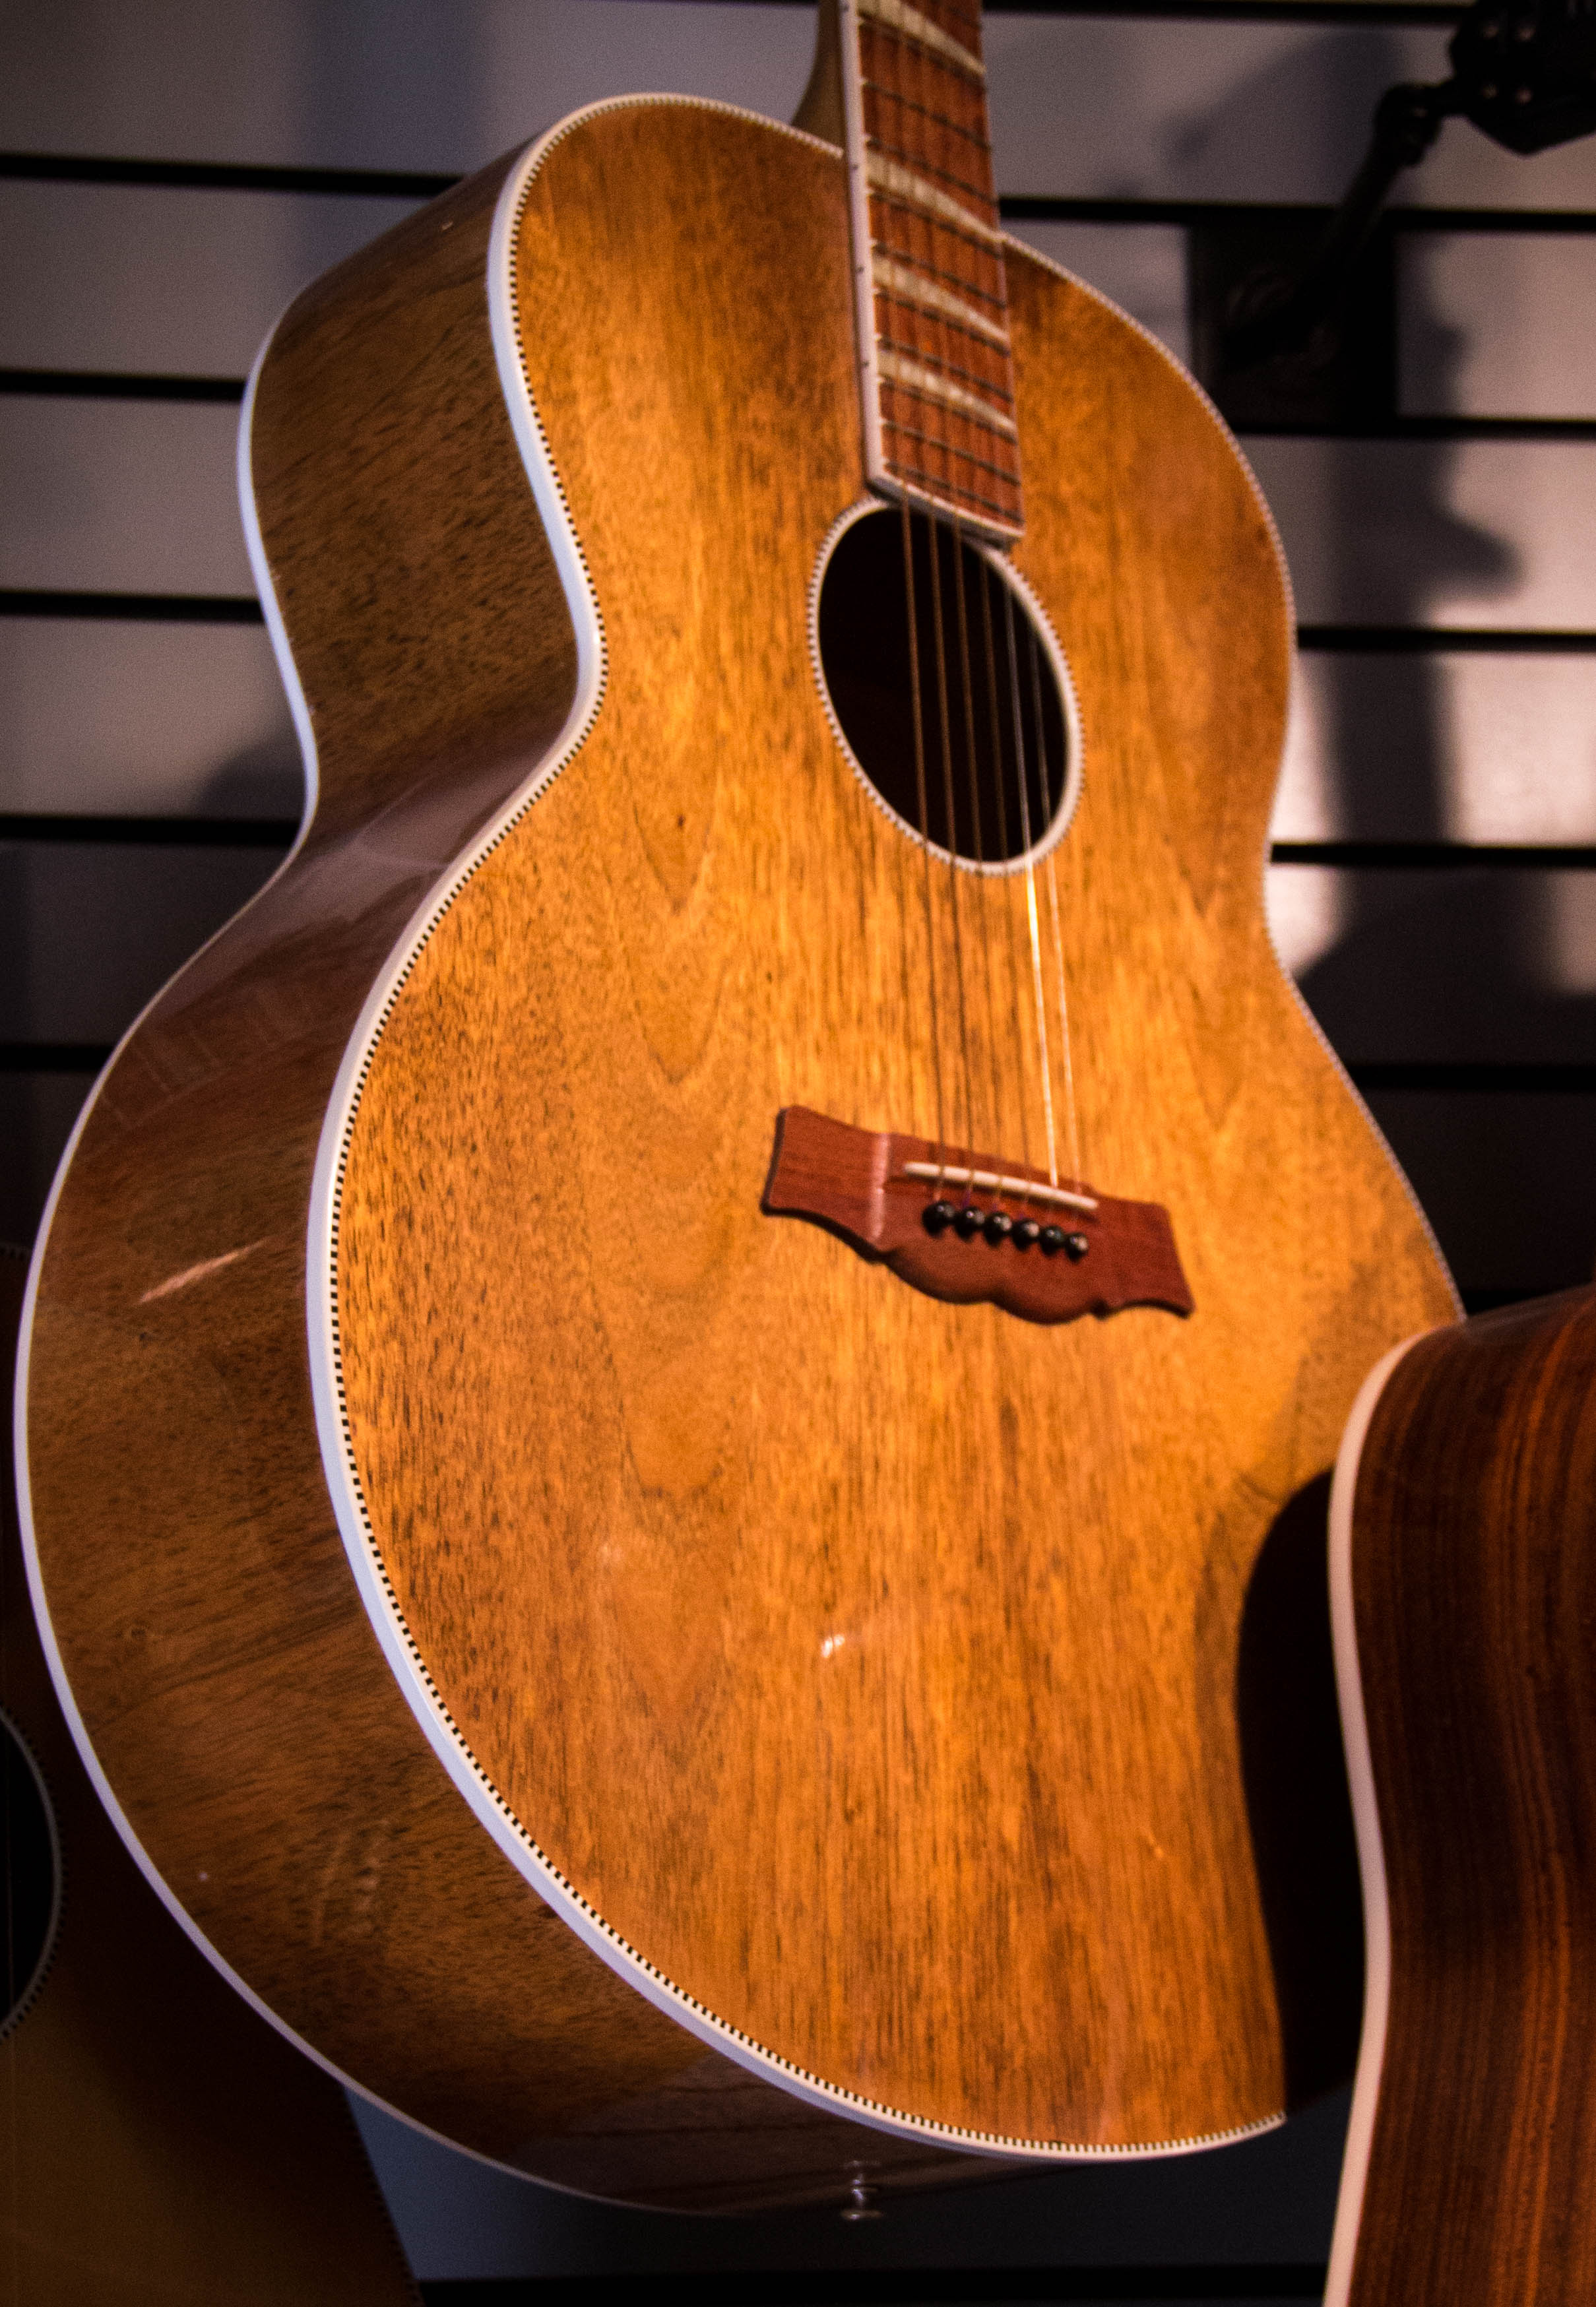 This acoustic guitar was crafted from the desk of Rickenbacker's longtime CEO, the late F.C. Hall. Hall was head of Rickenbacker from 1954 to 1984.